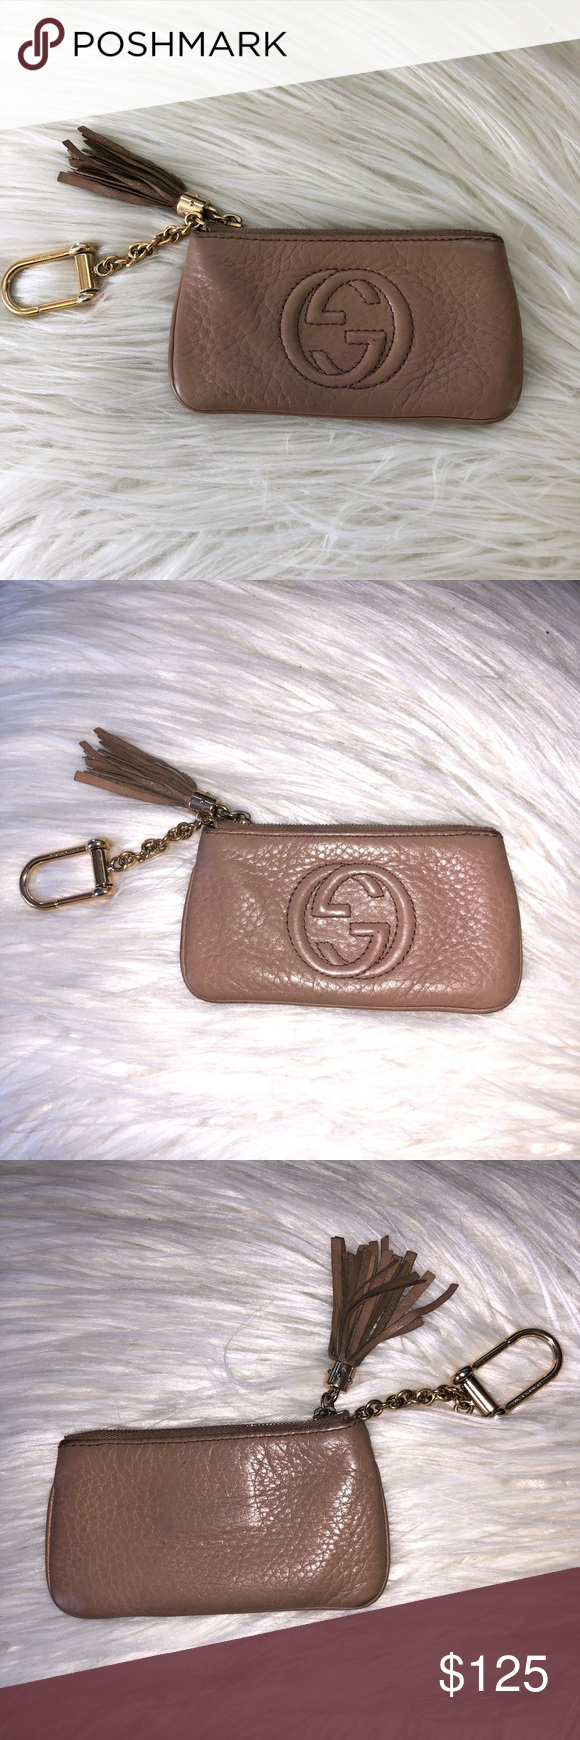 6d2ebf33303 Gucci Card Holder Pouch Keychain Nude Color - Used Authentic Gucci Card  pouch with zipper Attach to your keys Used Gucci Accessories Key   Card  Holders